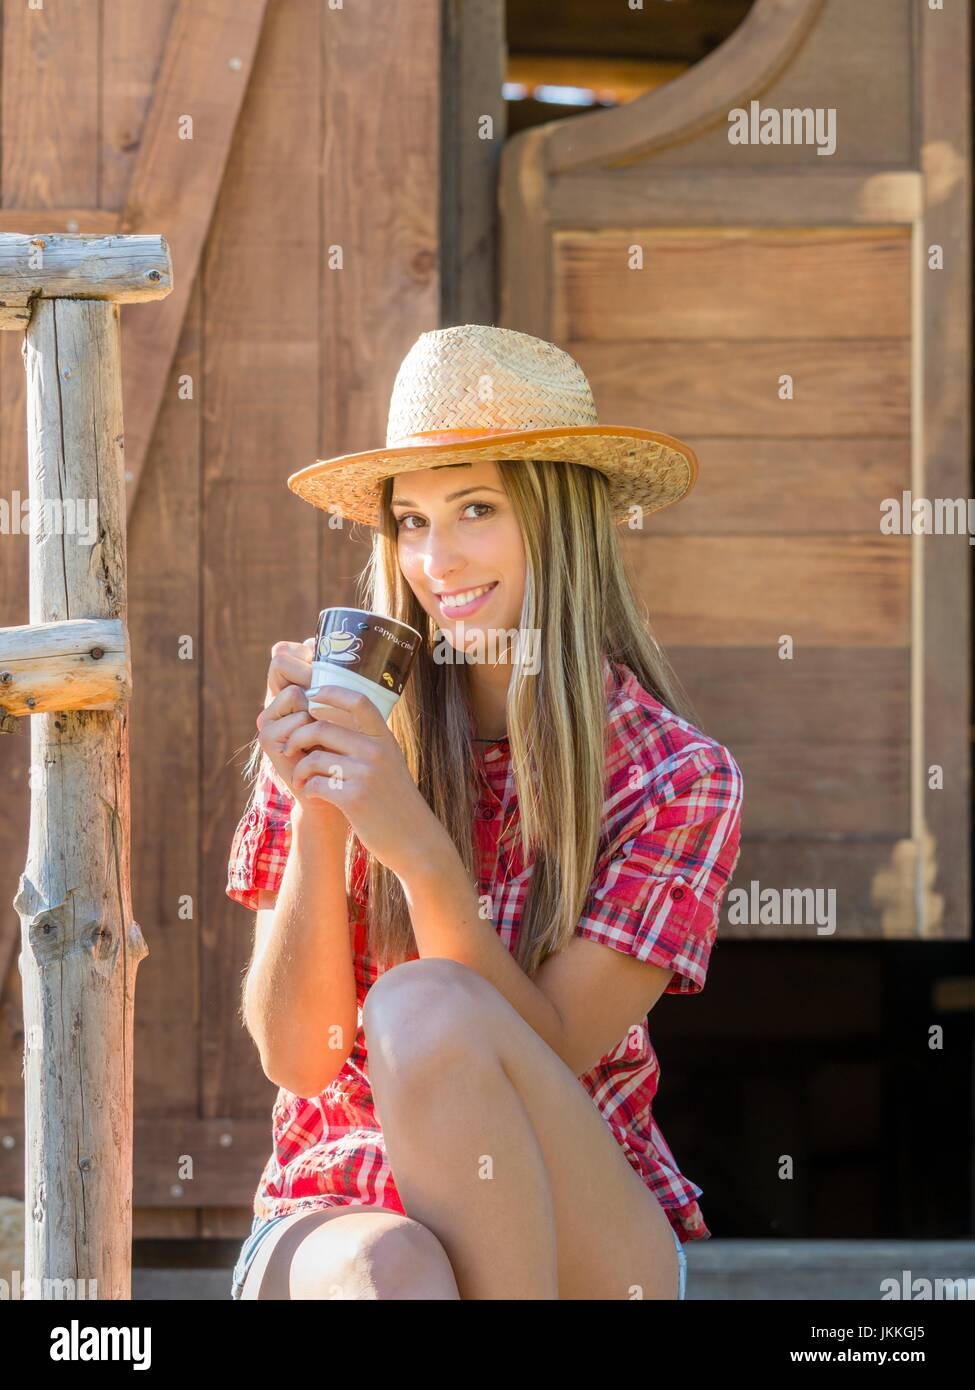 Countrygirl with cup of coffee in hand smiling smile single teenager giggling - Stock Image